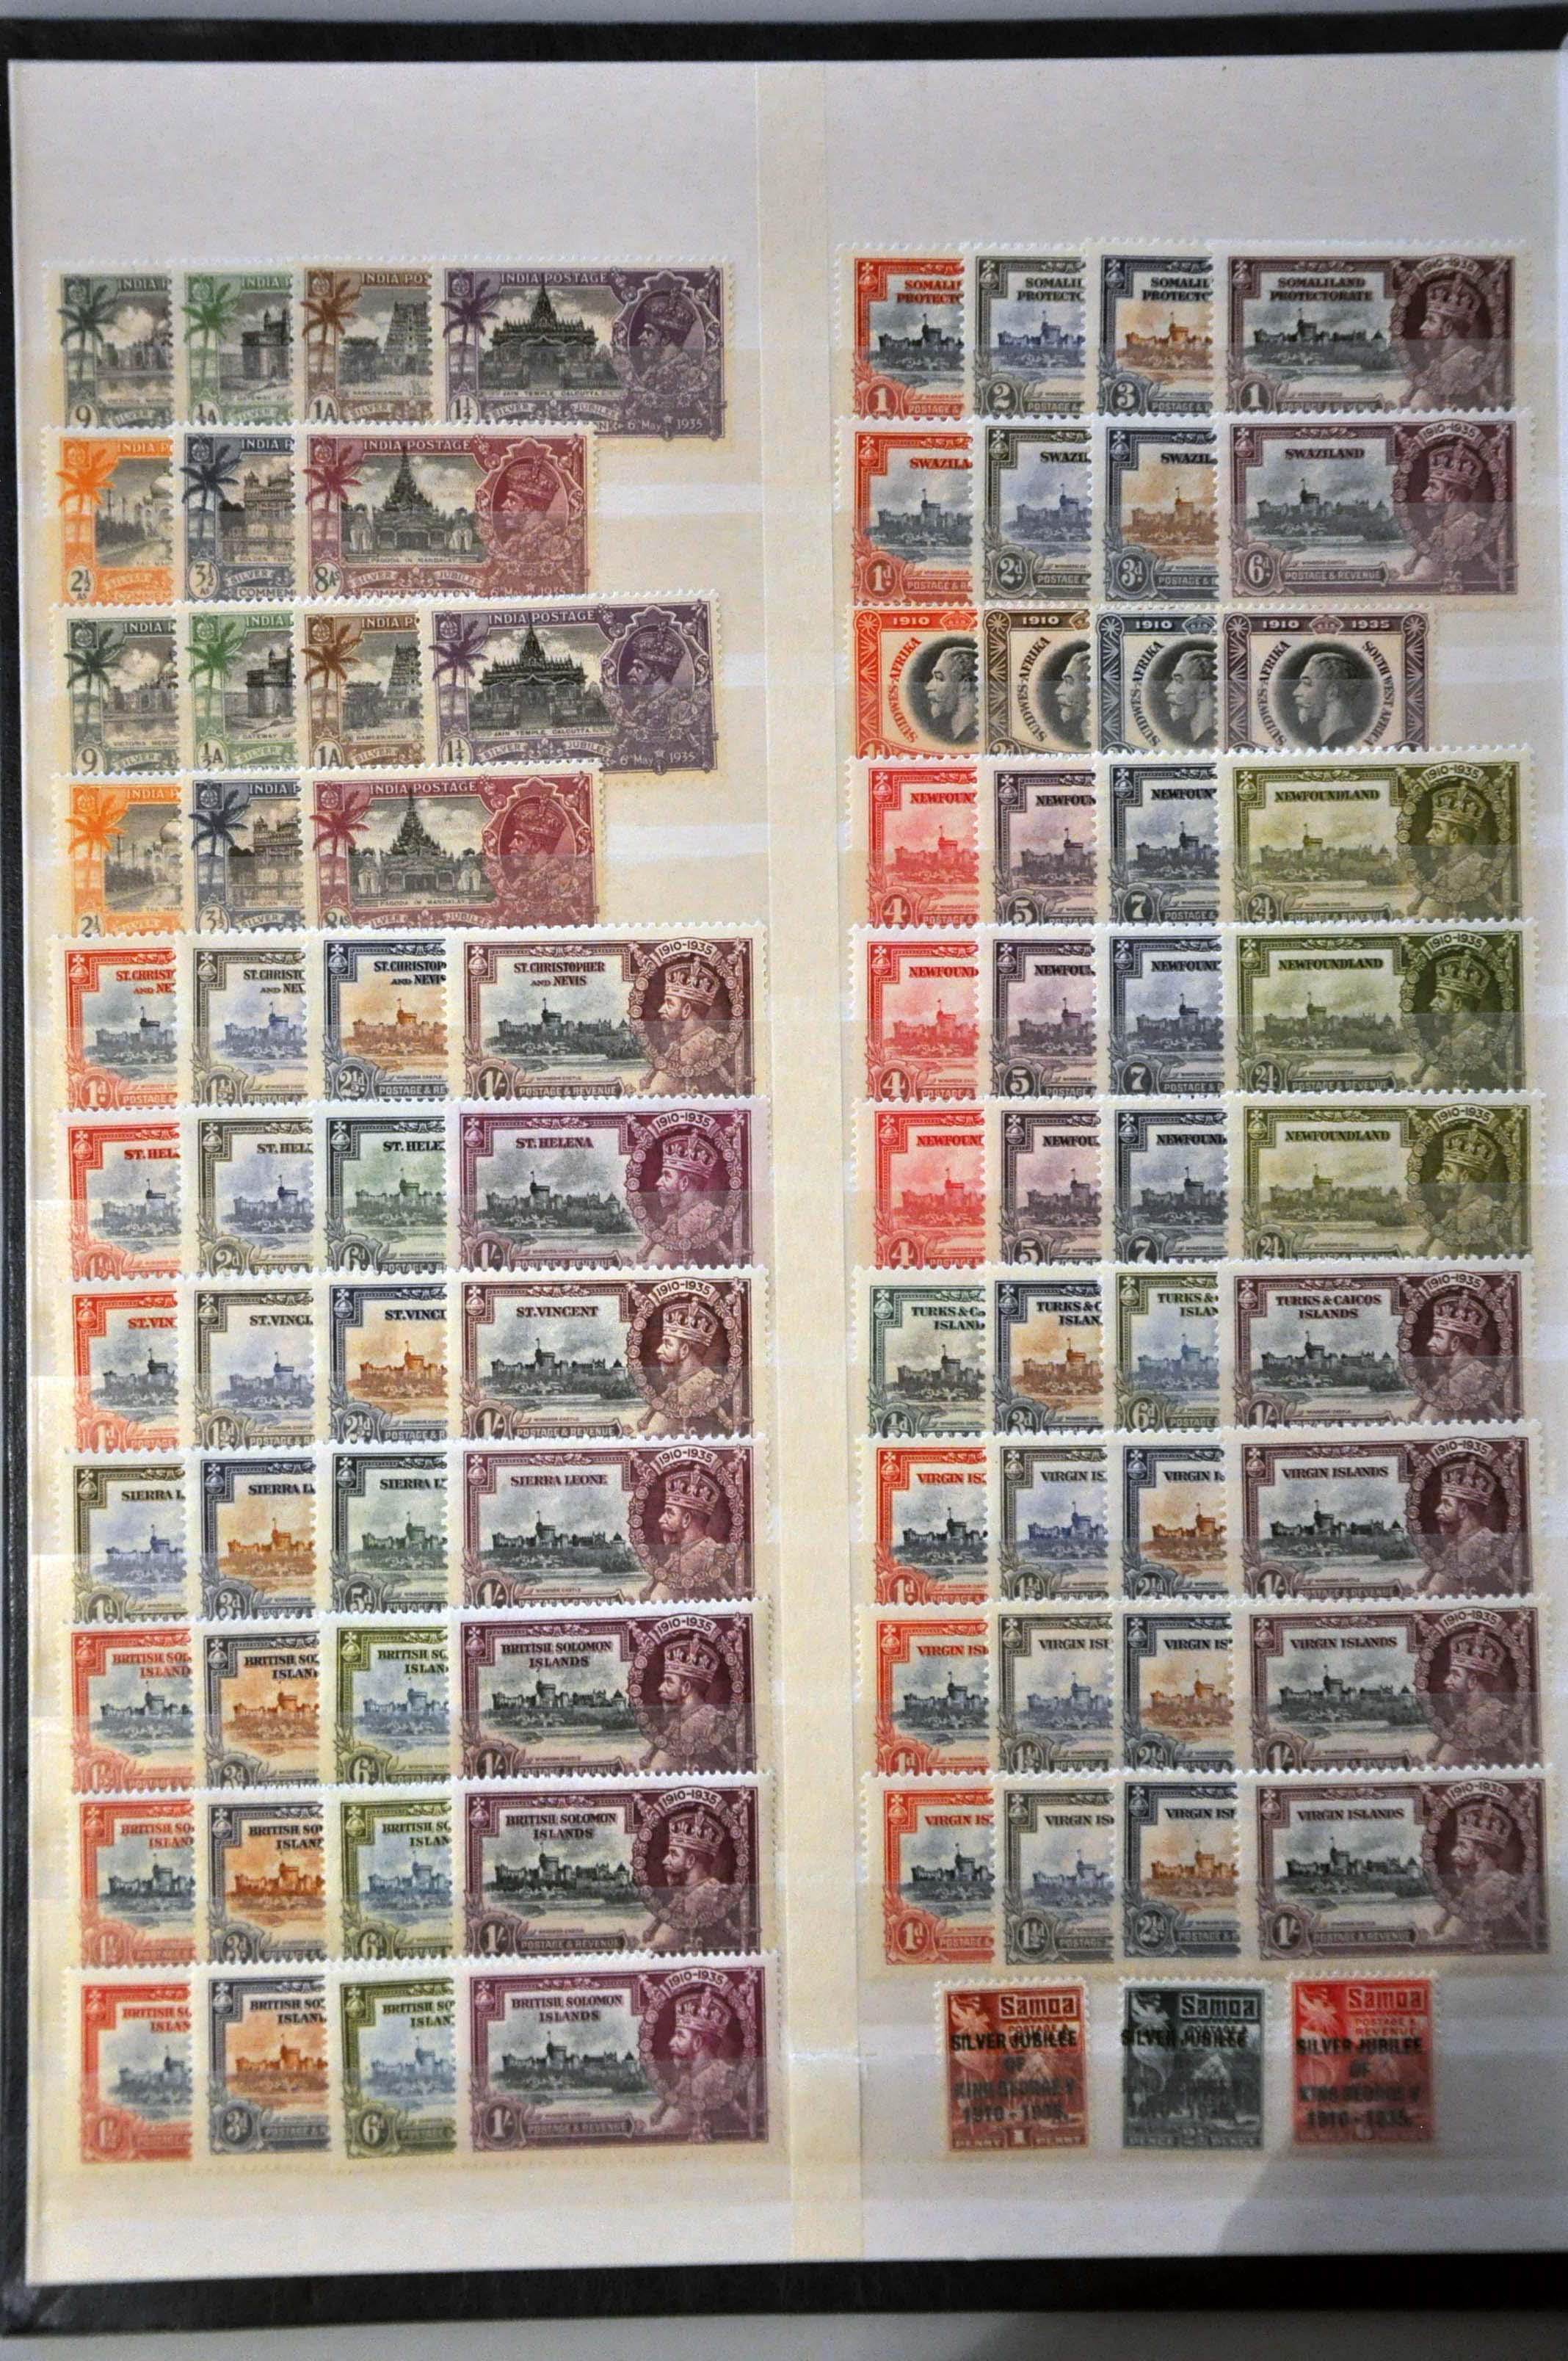 Lot 708 - Great Britain and former colonies British Commonwealth -  Corinphila Veilingen Auction 244 -Netherlands and former colonies, WW2 Postal History, Bosnia, German and British colonies, Egypt. - Day 1